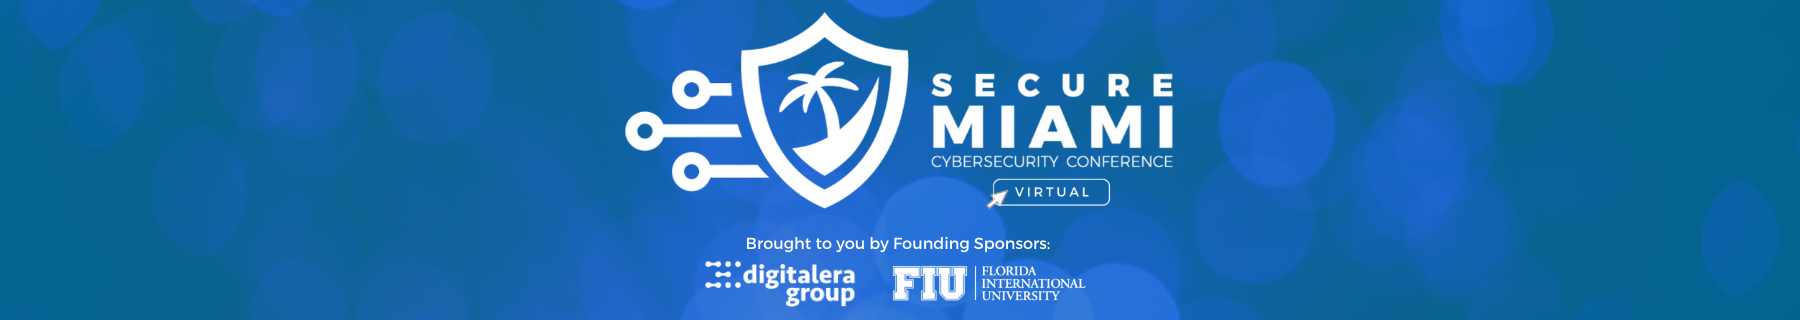 Secure Miami 2021 for mockups (2)